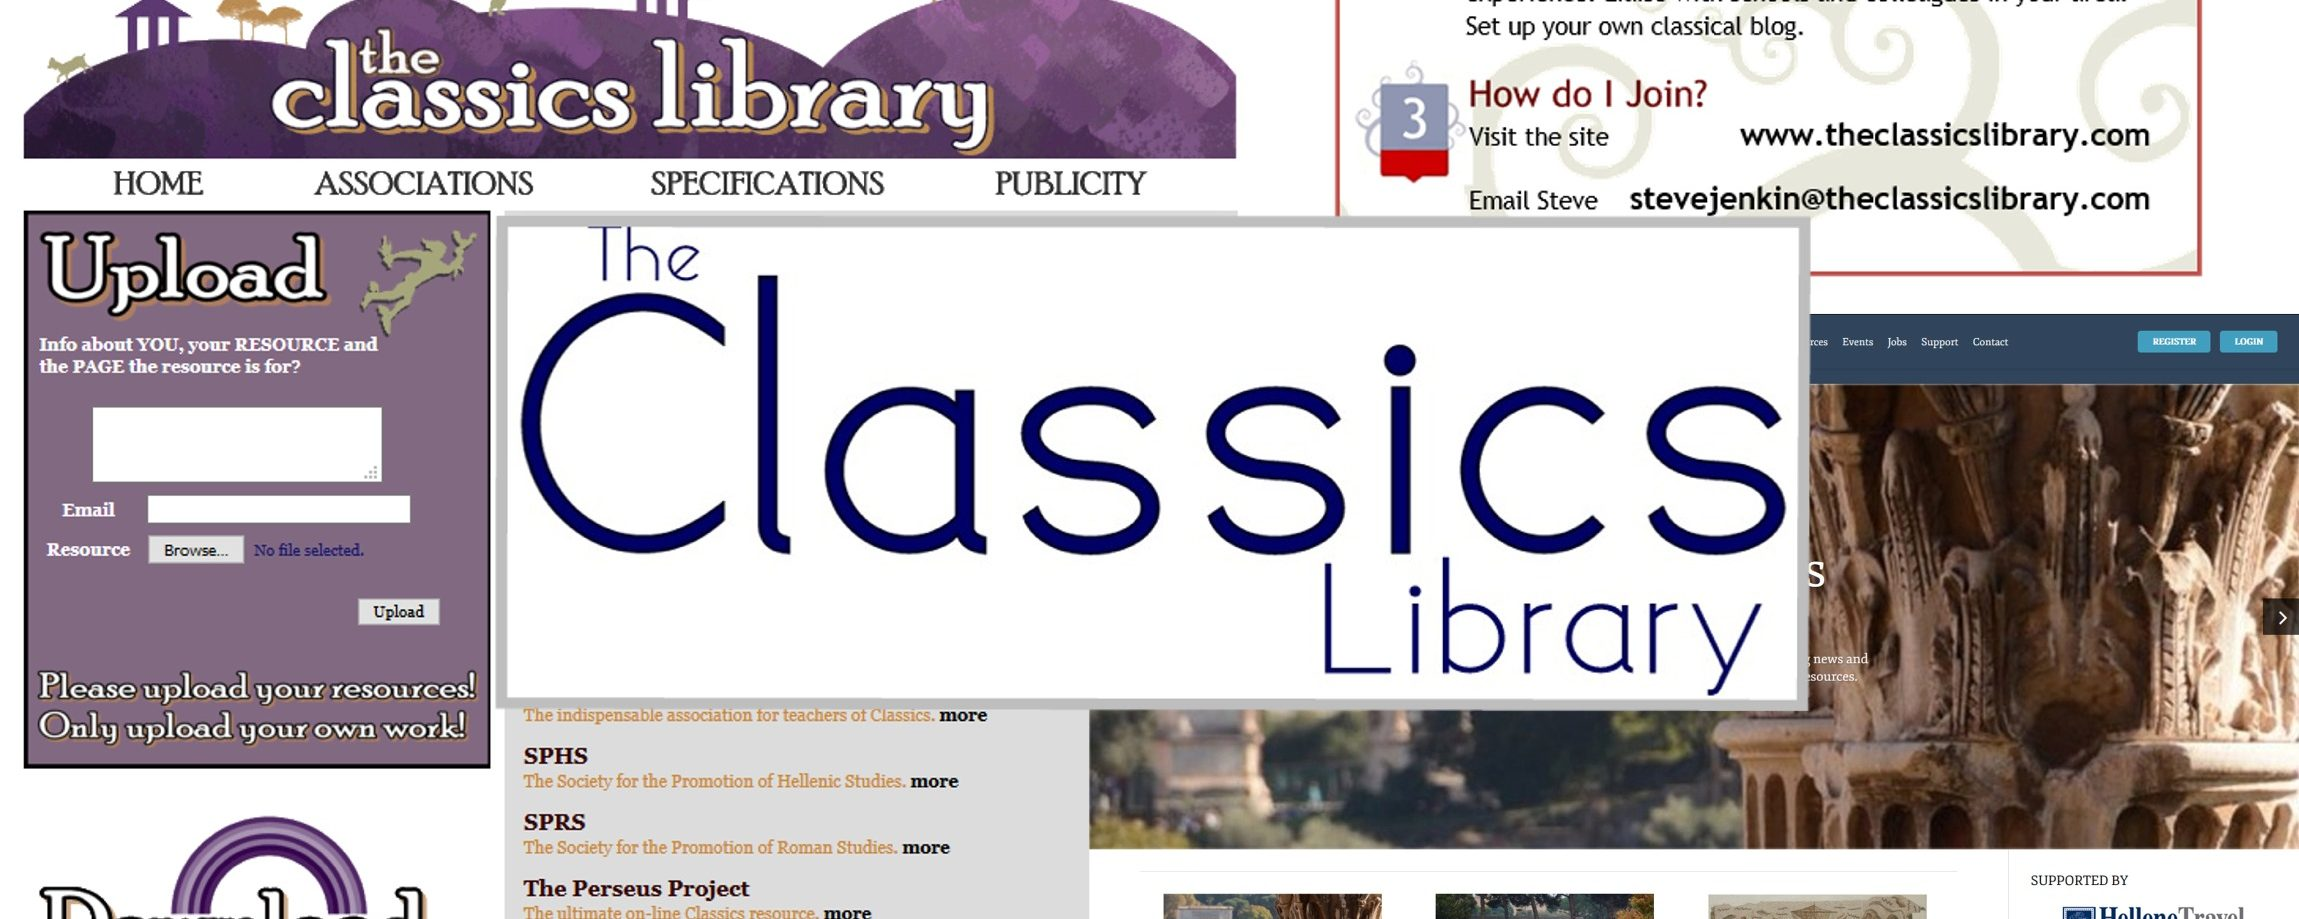 10 Years of The Classics Library!